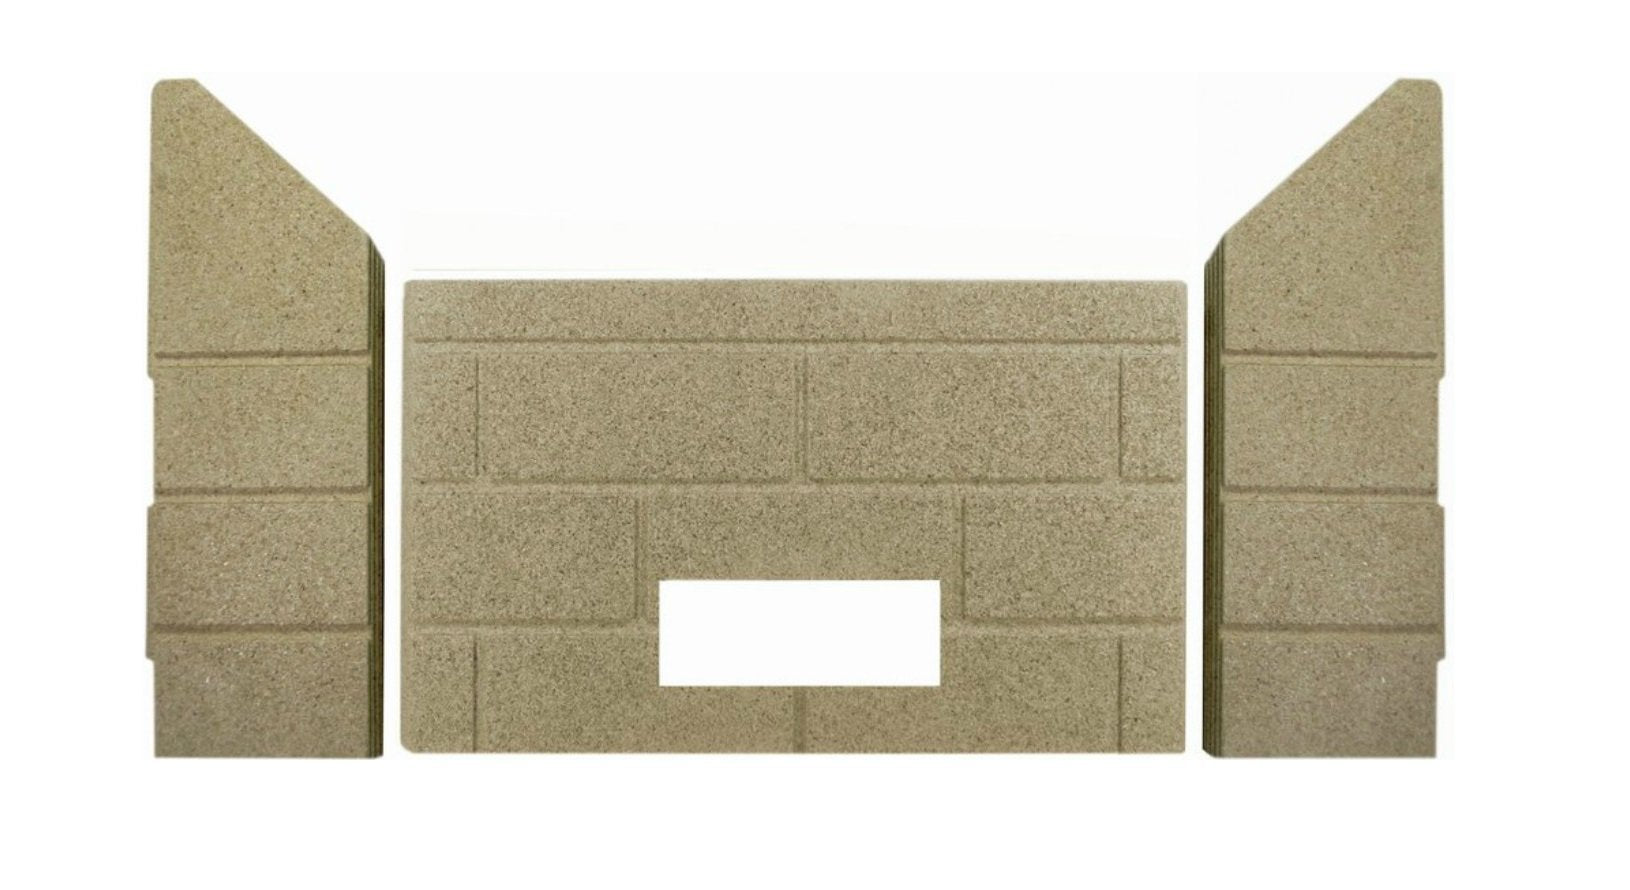 PP1005 | Whitfield # 11750015, Advantage Plus Firebrick. PP1005